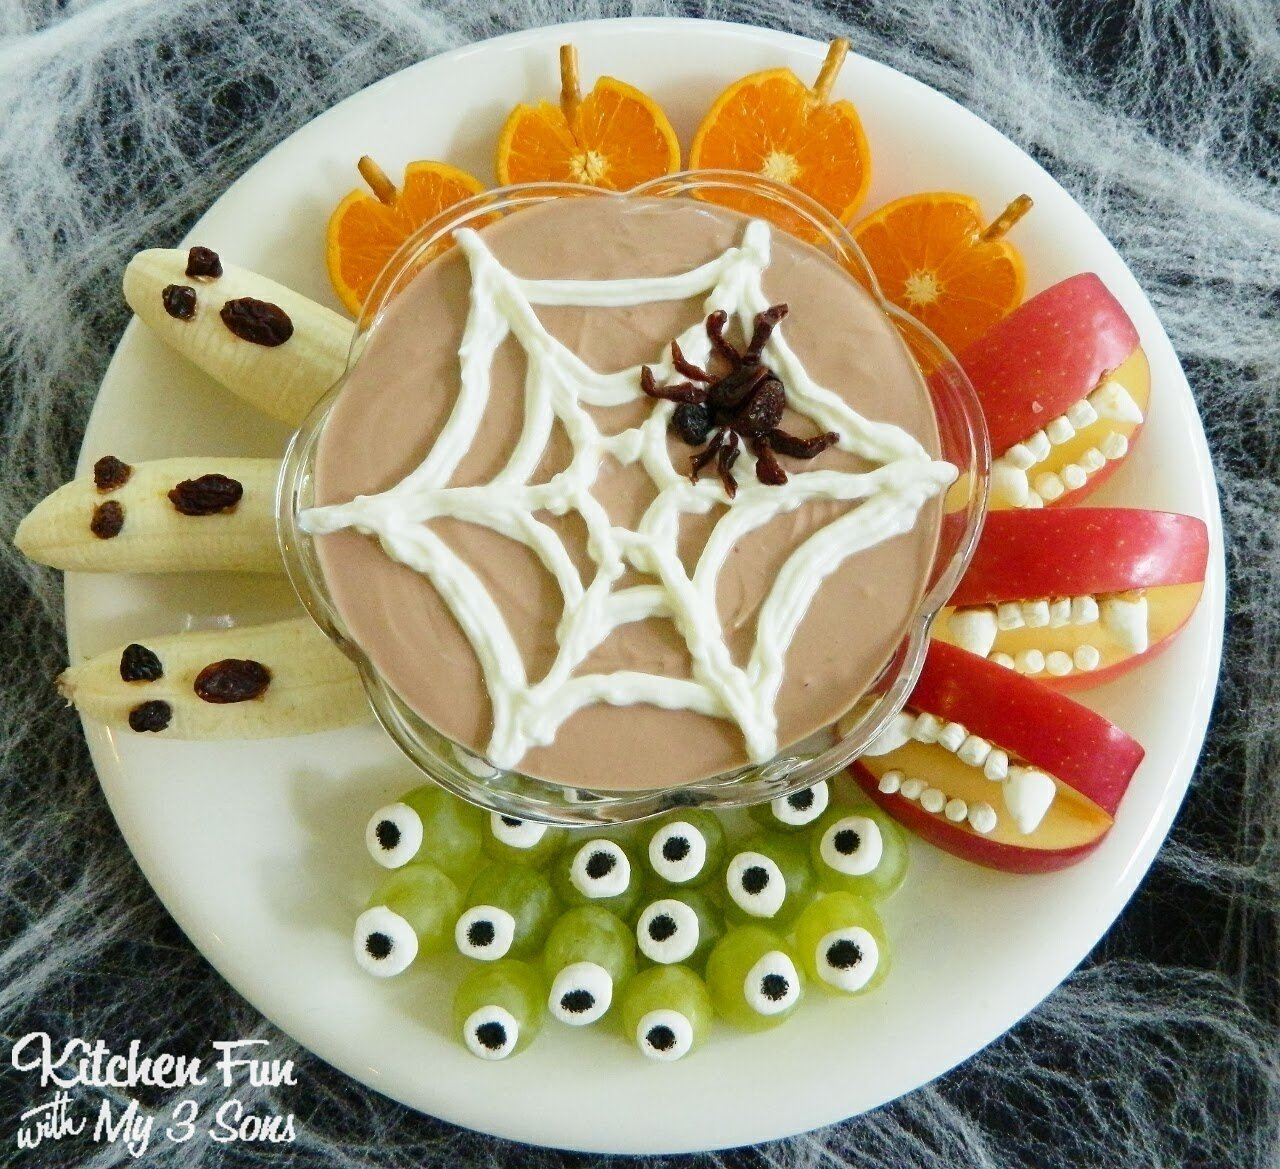 10 Cute Halloween Treat Ideas For Kids 22 of the best healthy halloween snack ideas for kids 2 2020